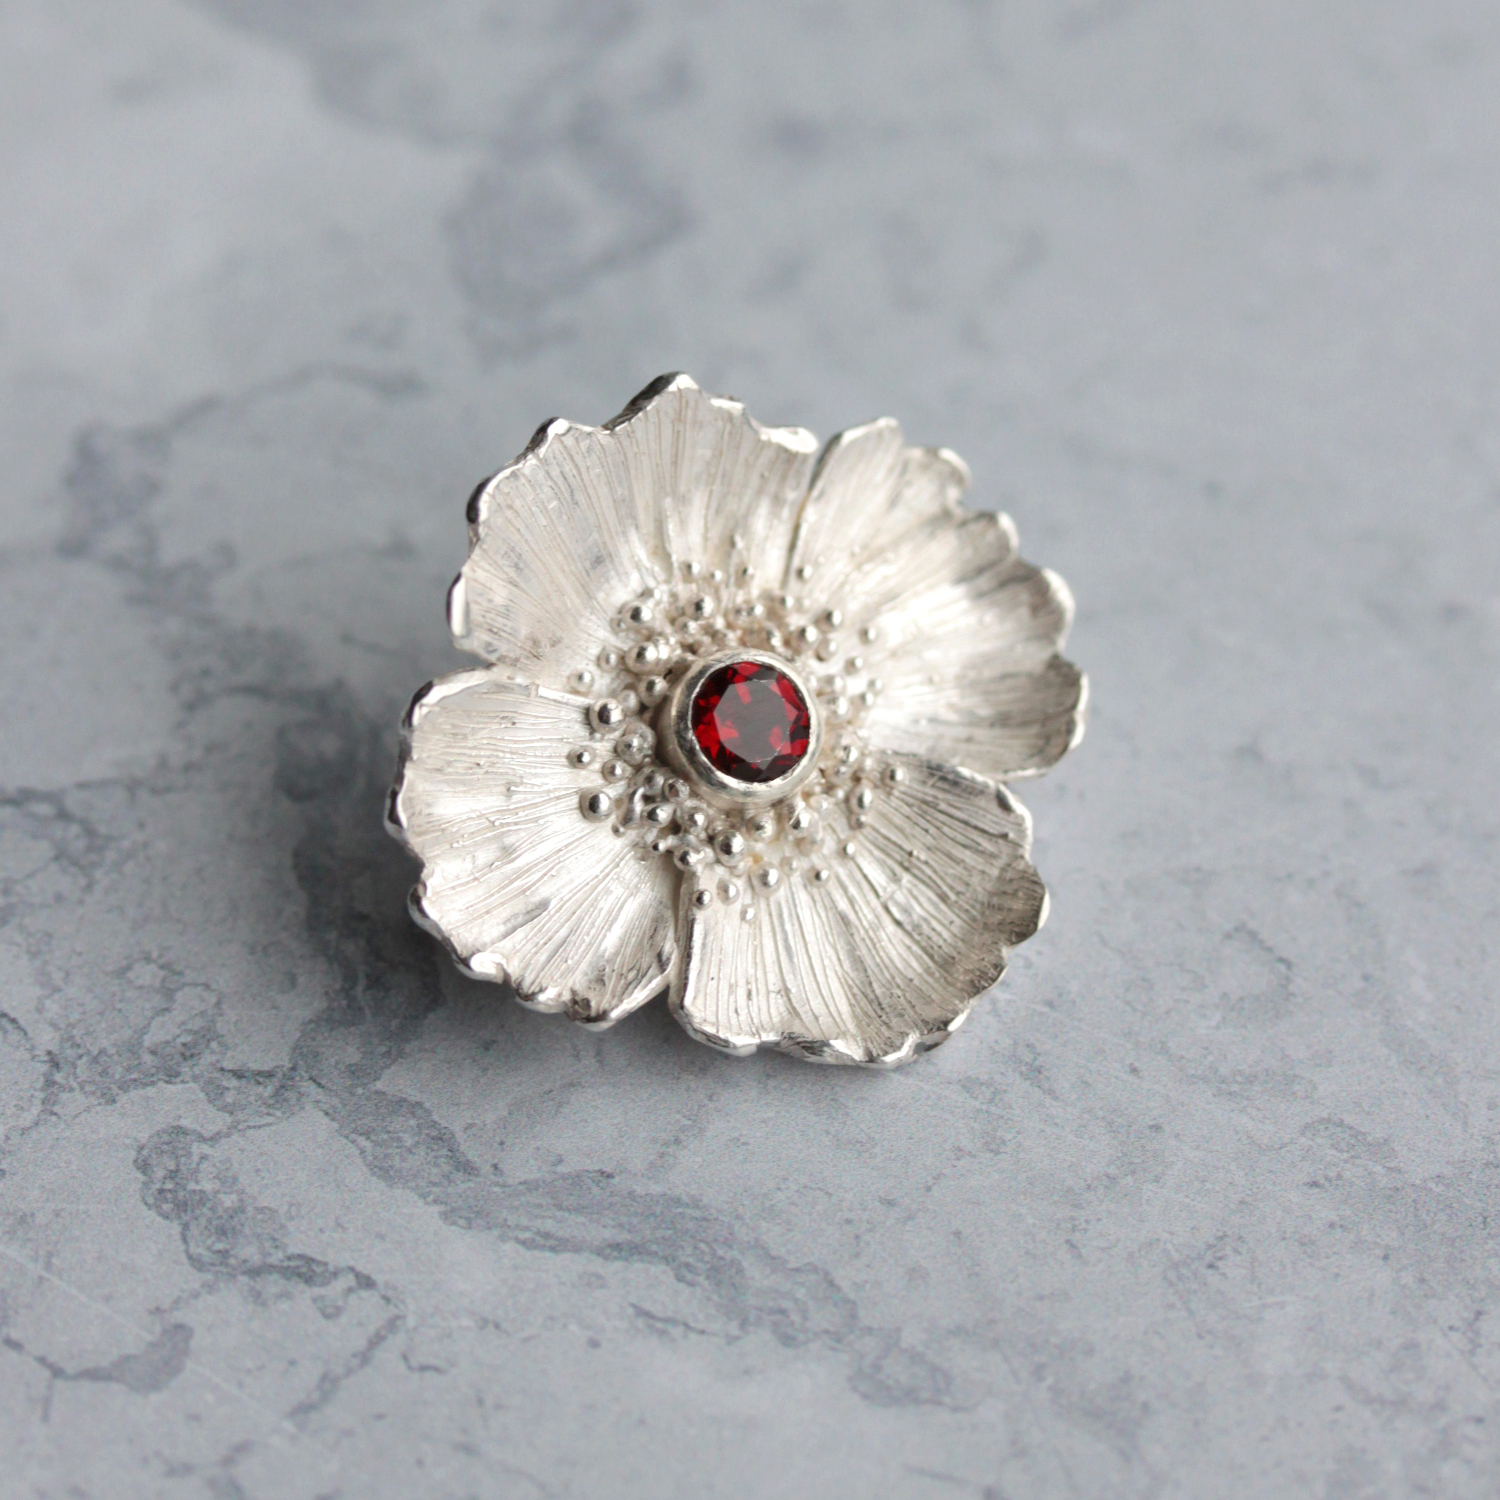 A custom made poppy brooch for a historian, to wear at the World War One centenary events she was attending. A beautiful and symbolic piece, set with a striking red garnet.